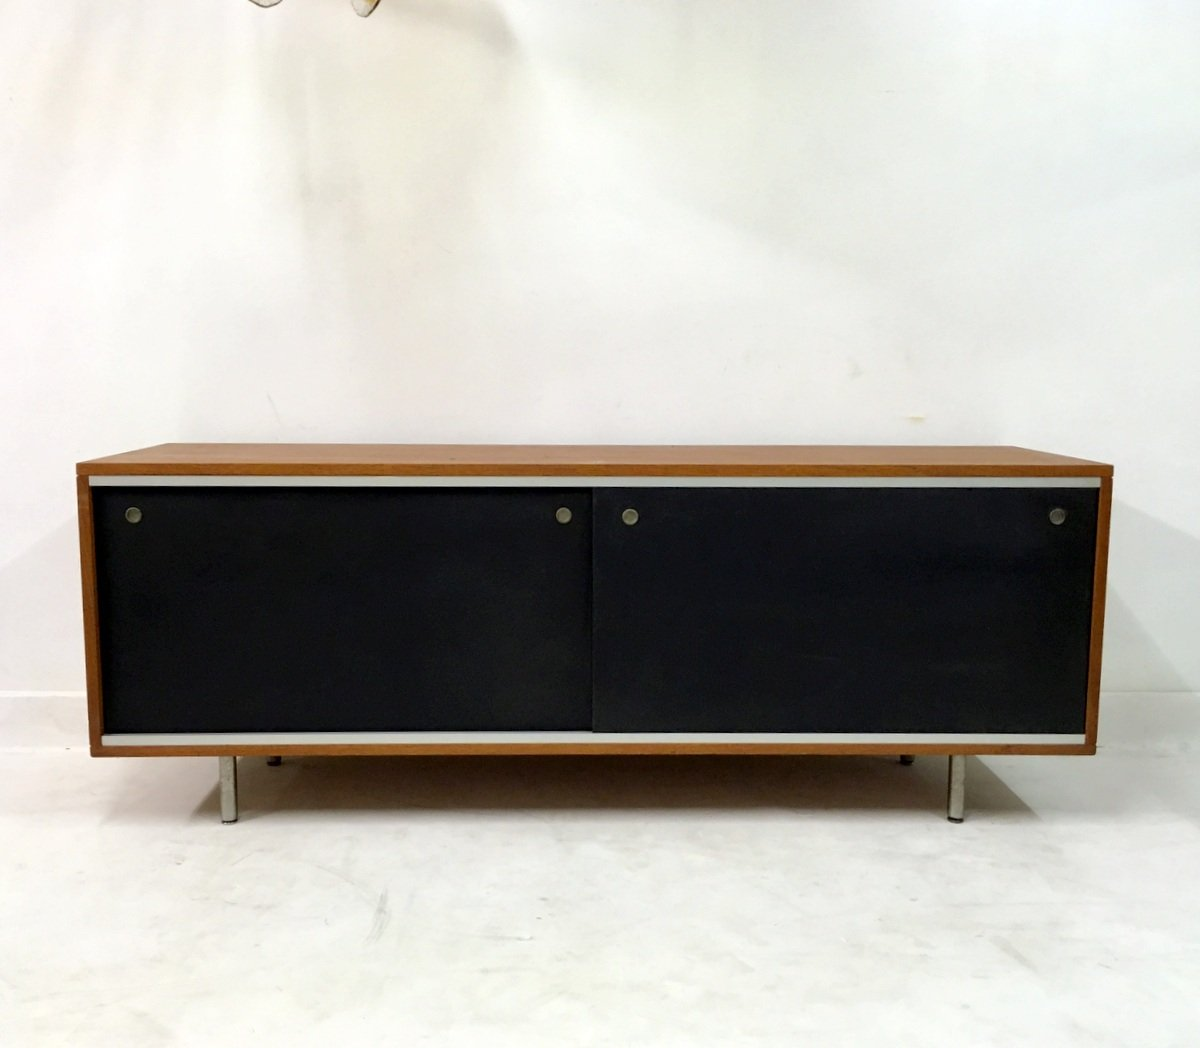 Retro Credenza Mid Century Teak Credenza By George Nelson For Herman Miller For